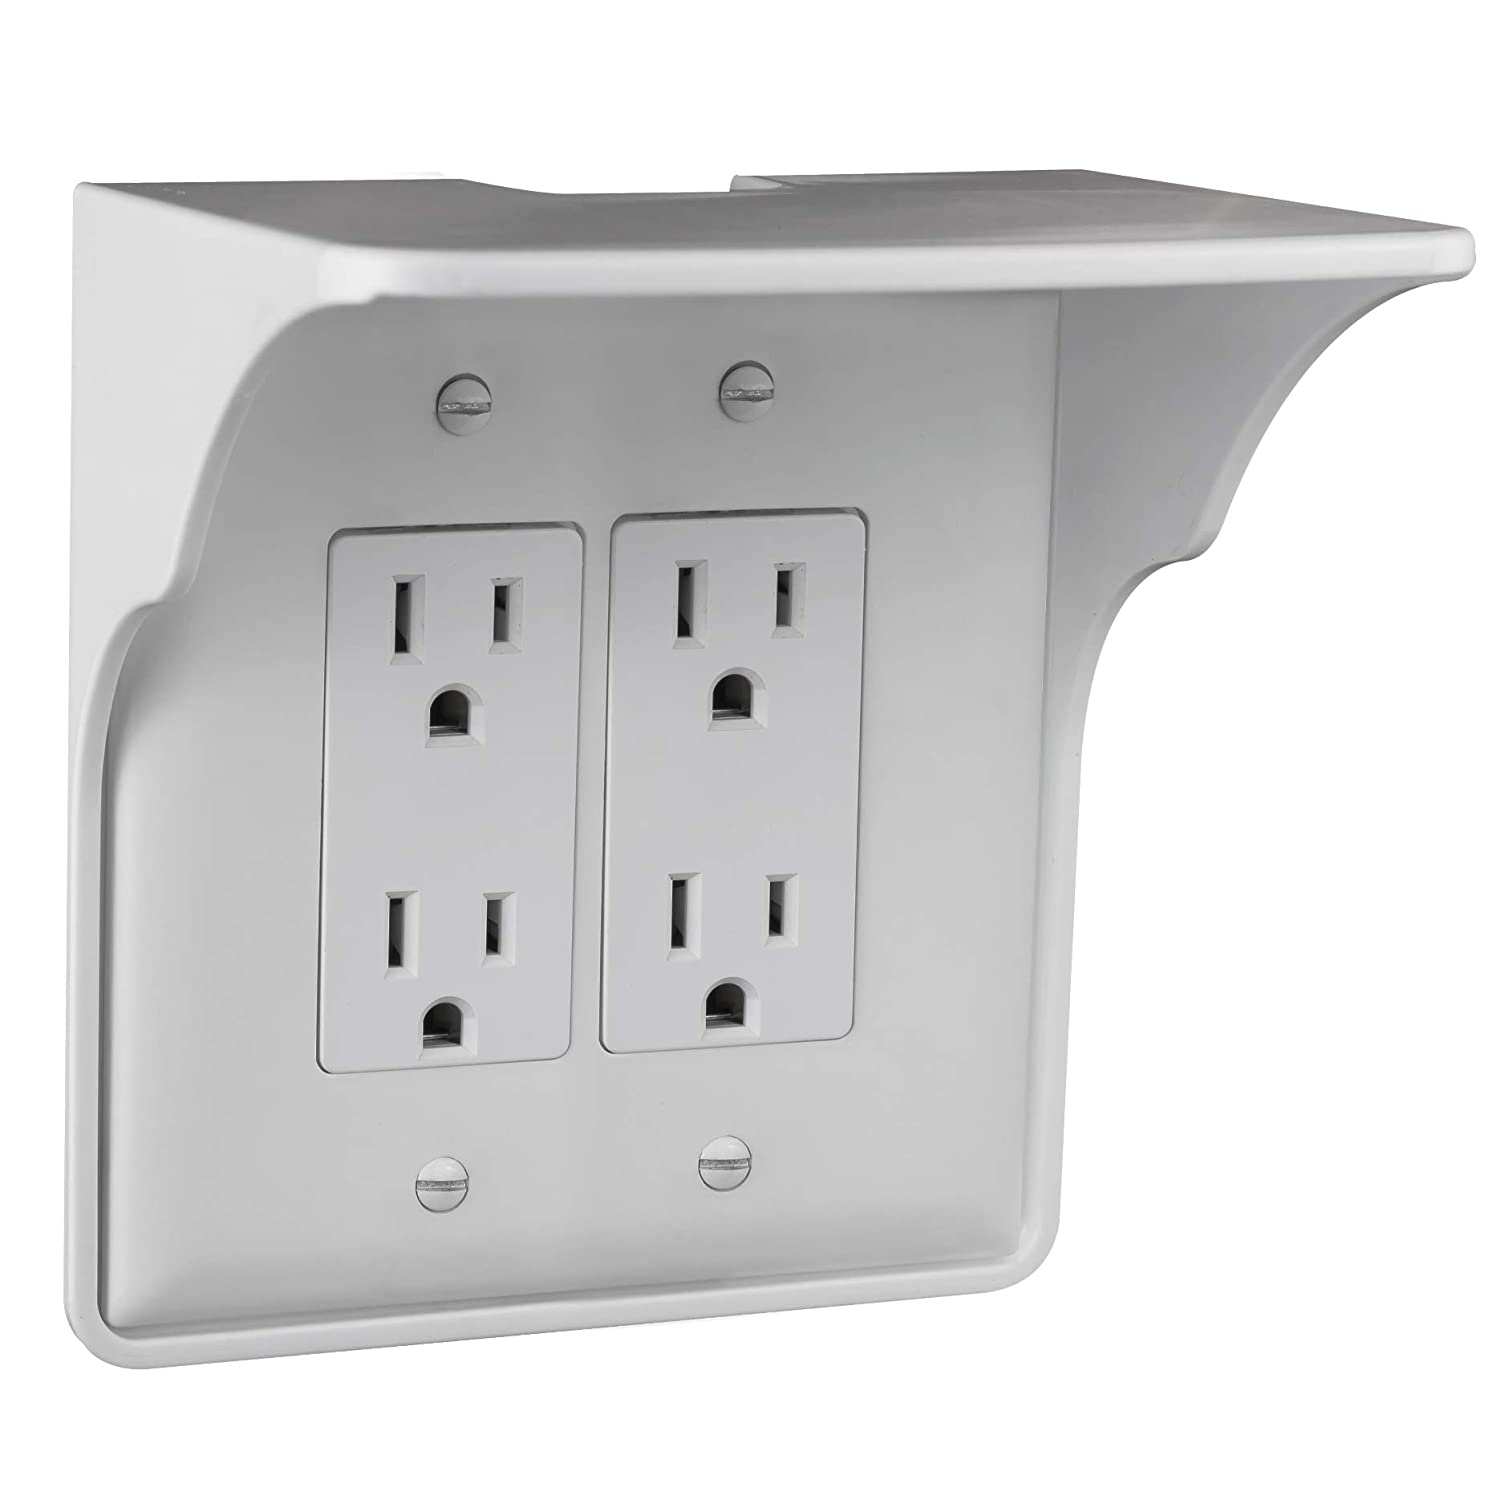 Storage Theory | Double Outlet Power Perch | Ultimate Outlet Shelf | Easy Installation, No Additional Hardware Required | Holds Up to 10lbs | White Color | Single Shelf (2-Pack)